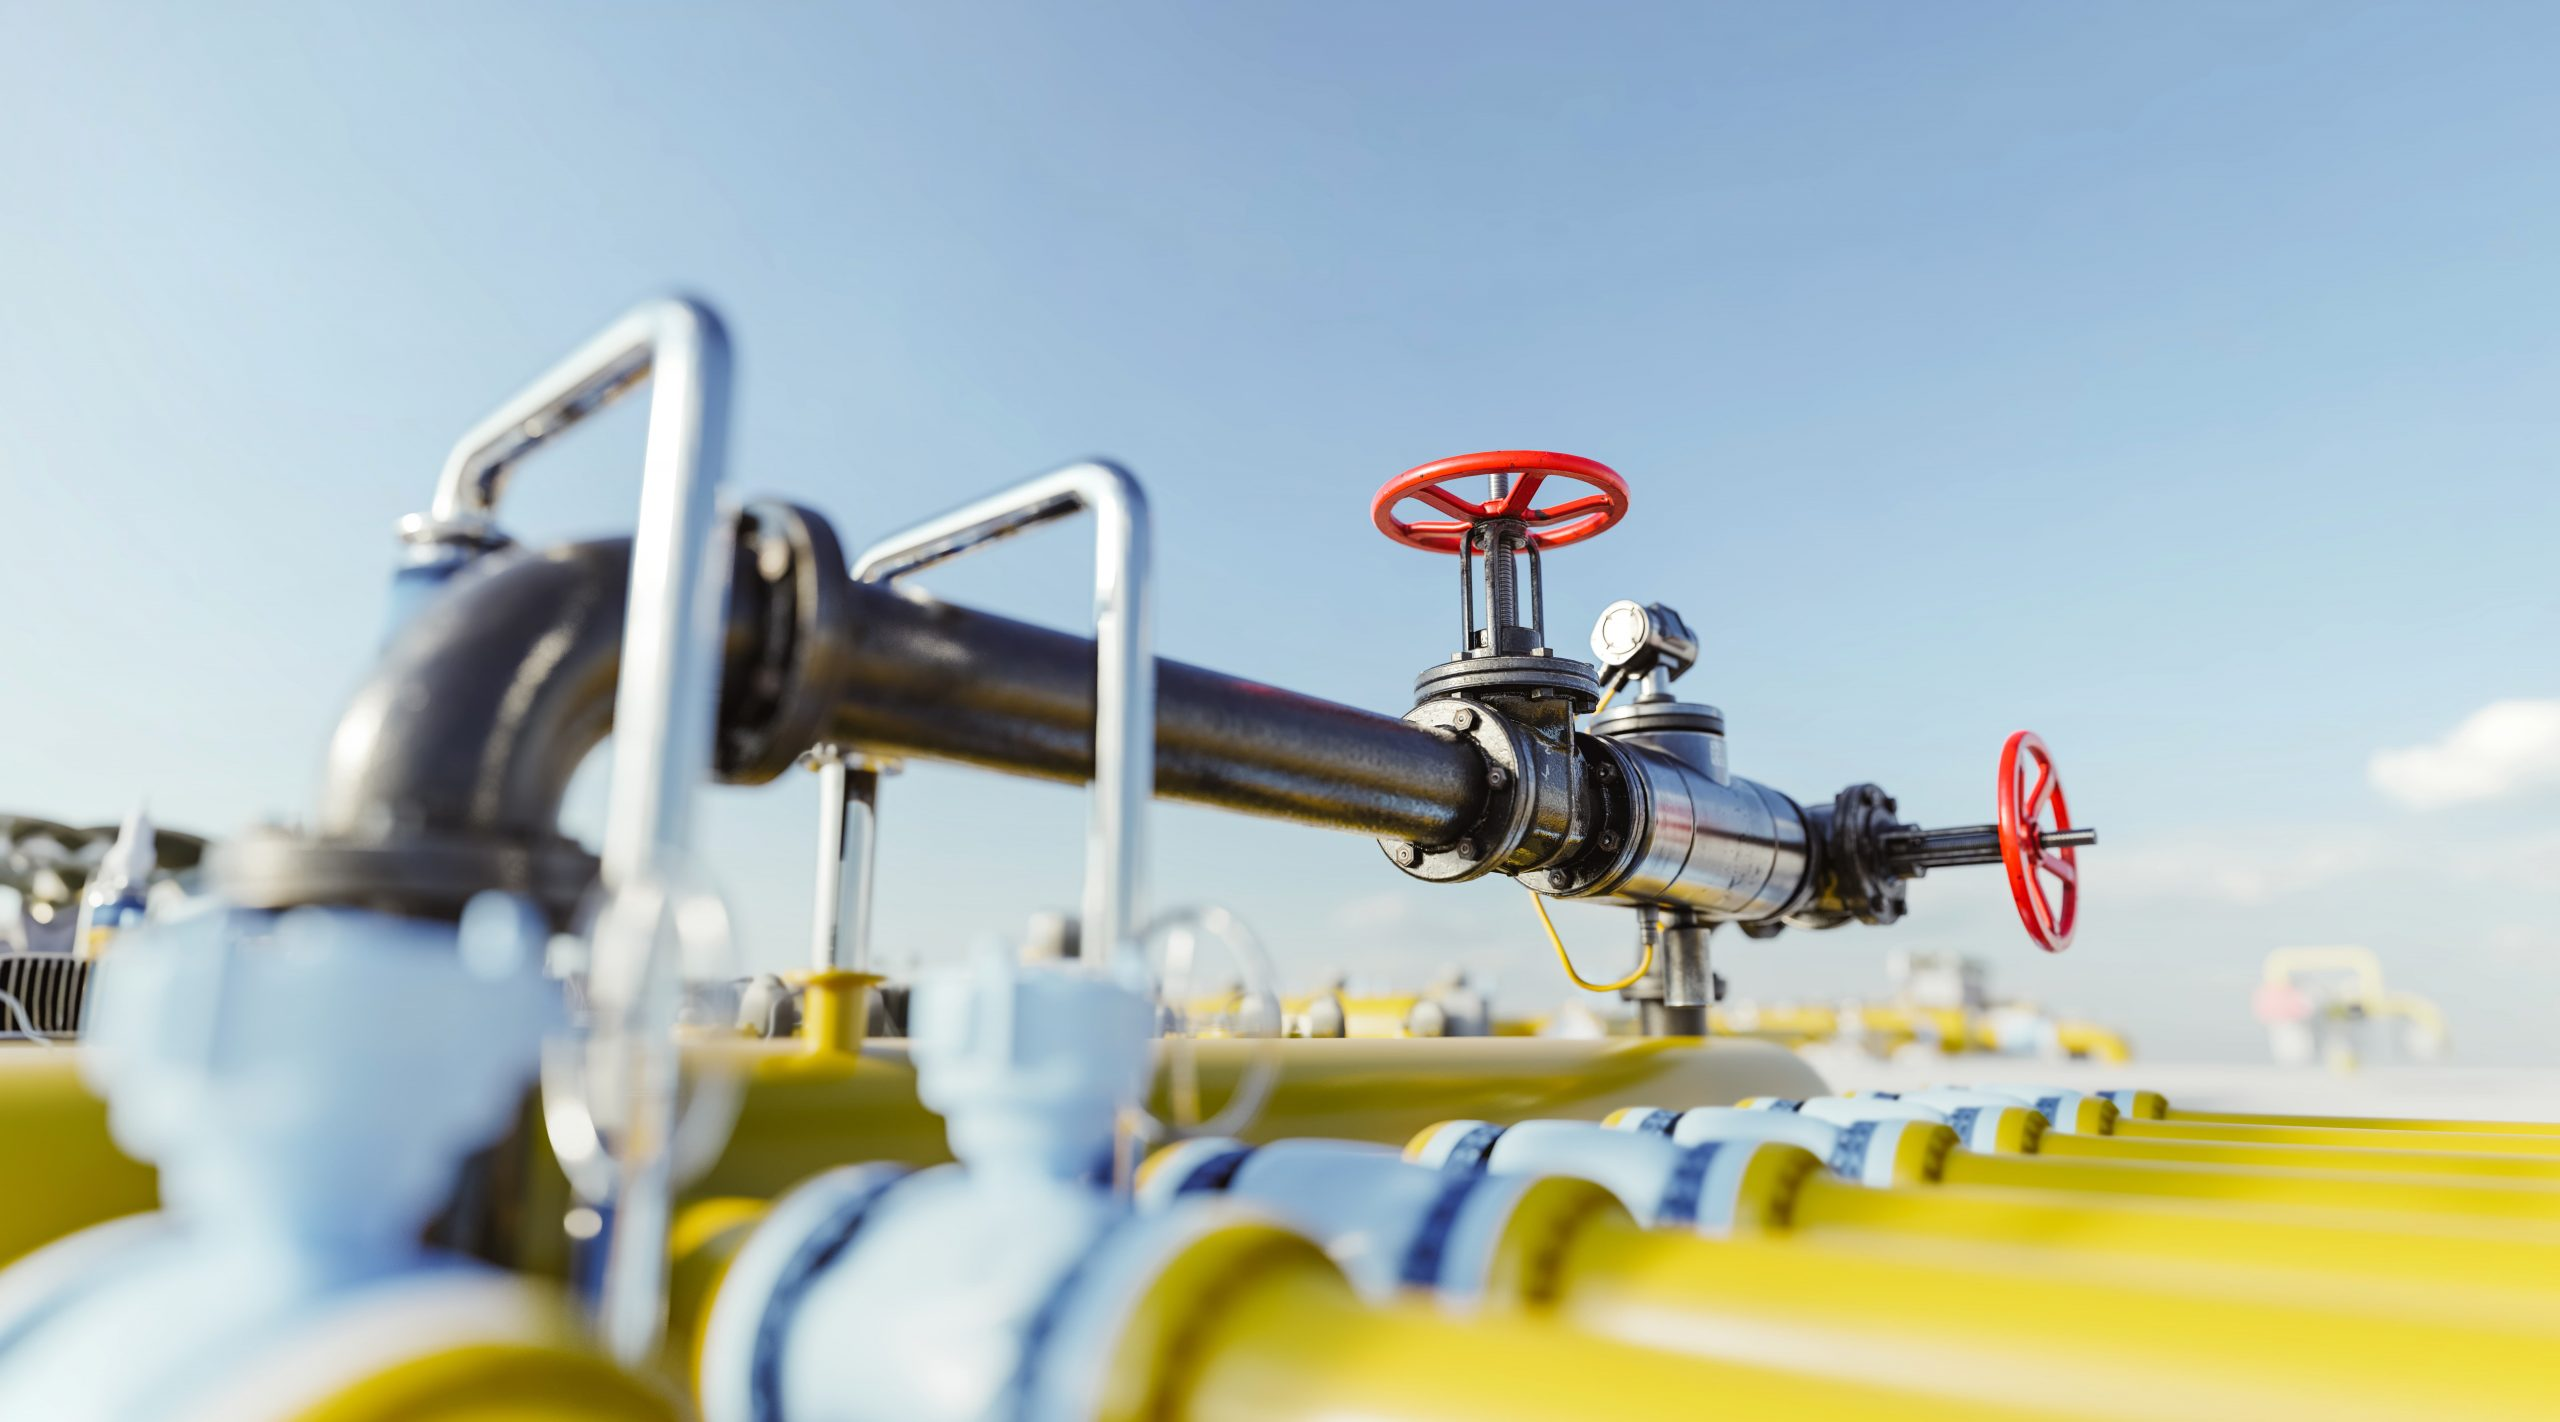 gas-tap-with-pipeline-system-at-natural-gas-statio-HSEHJNT-min